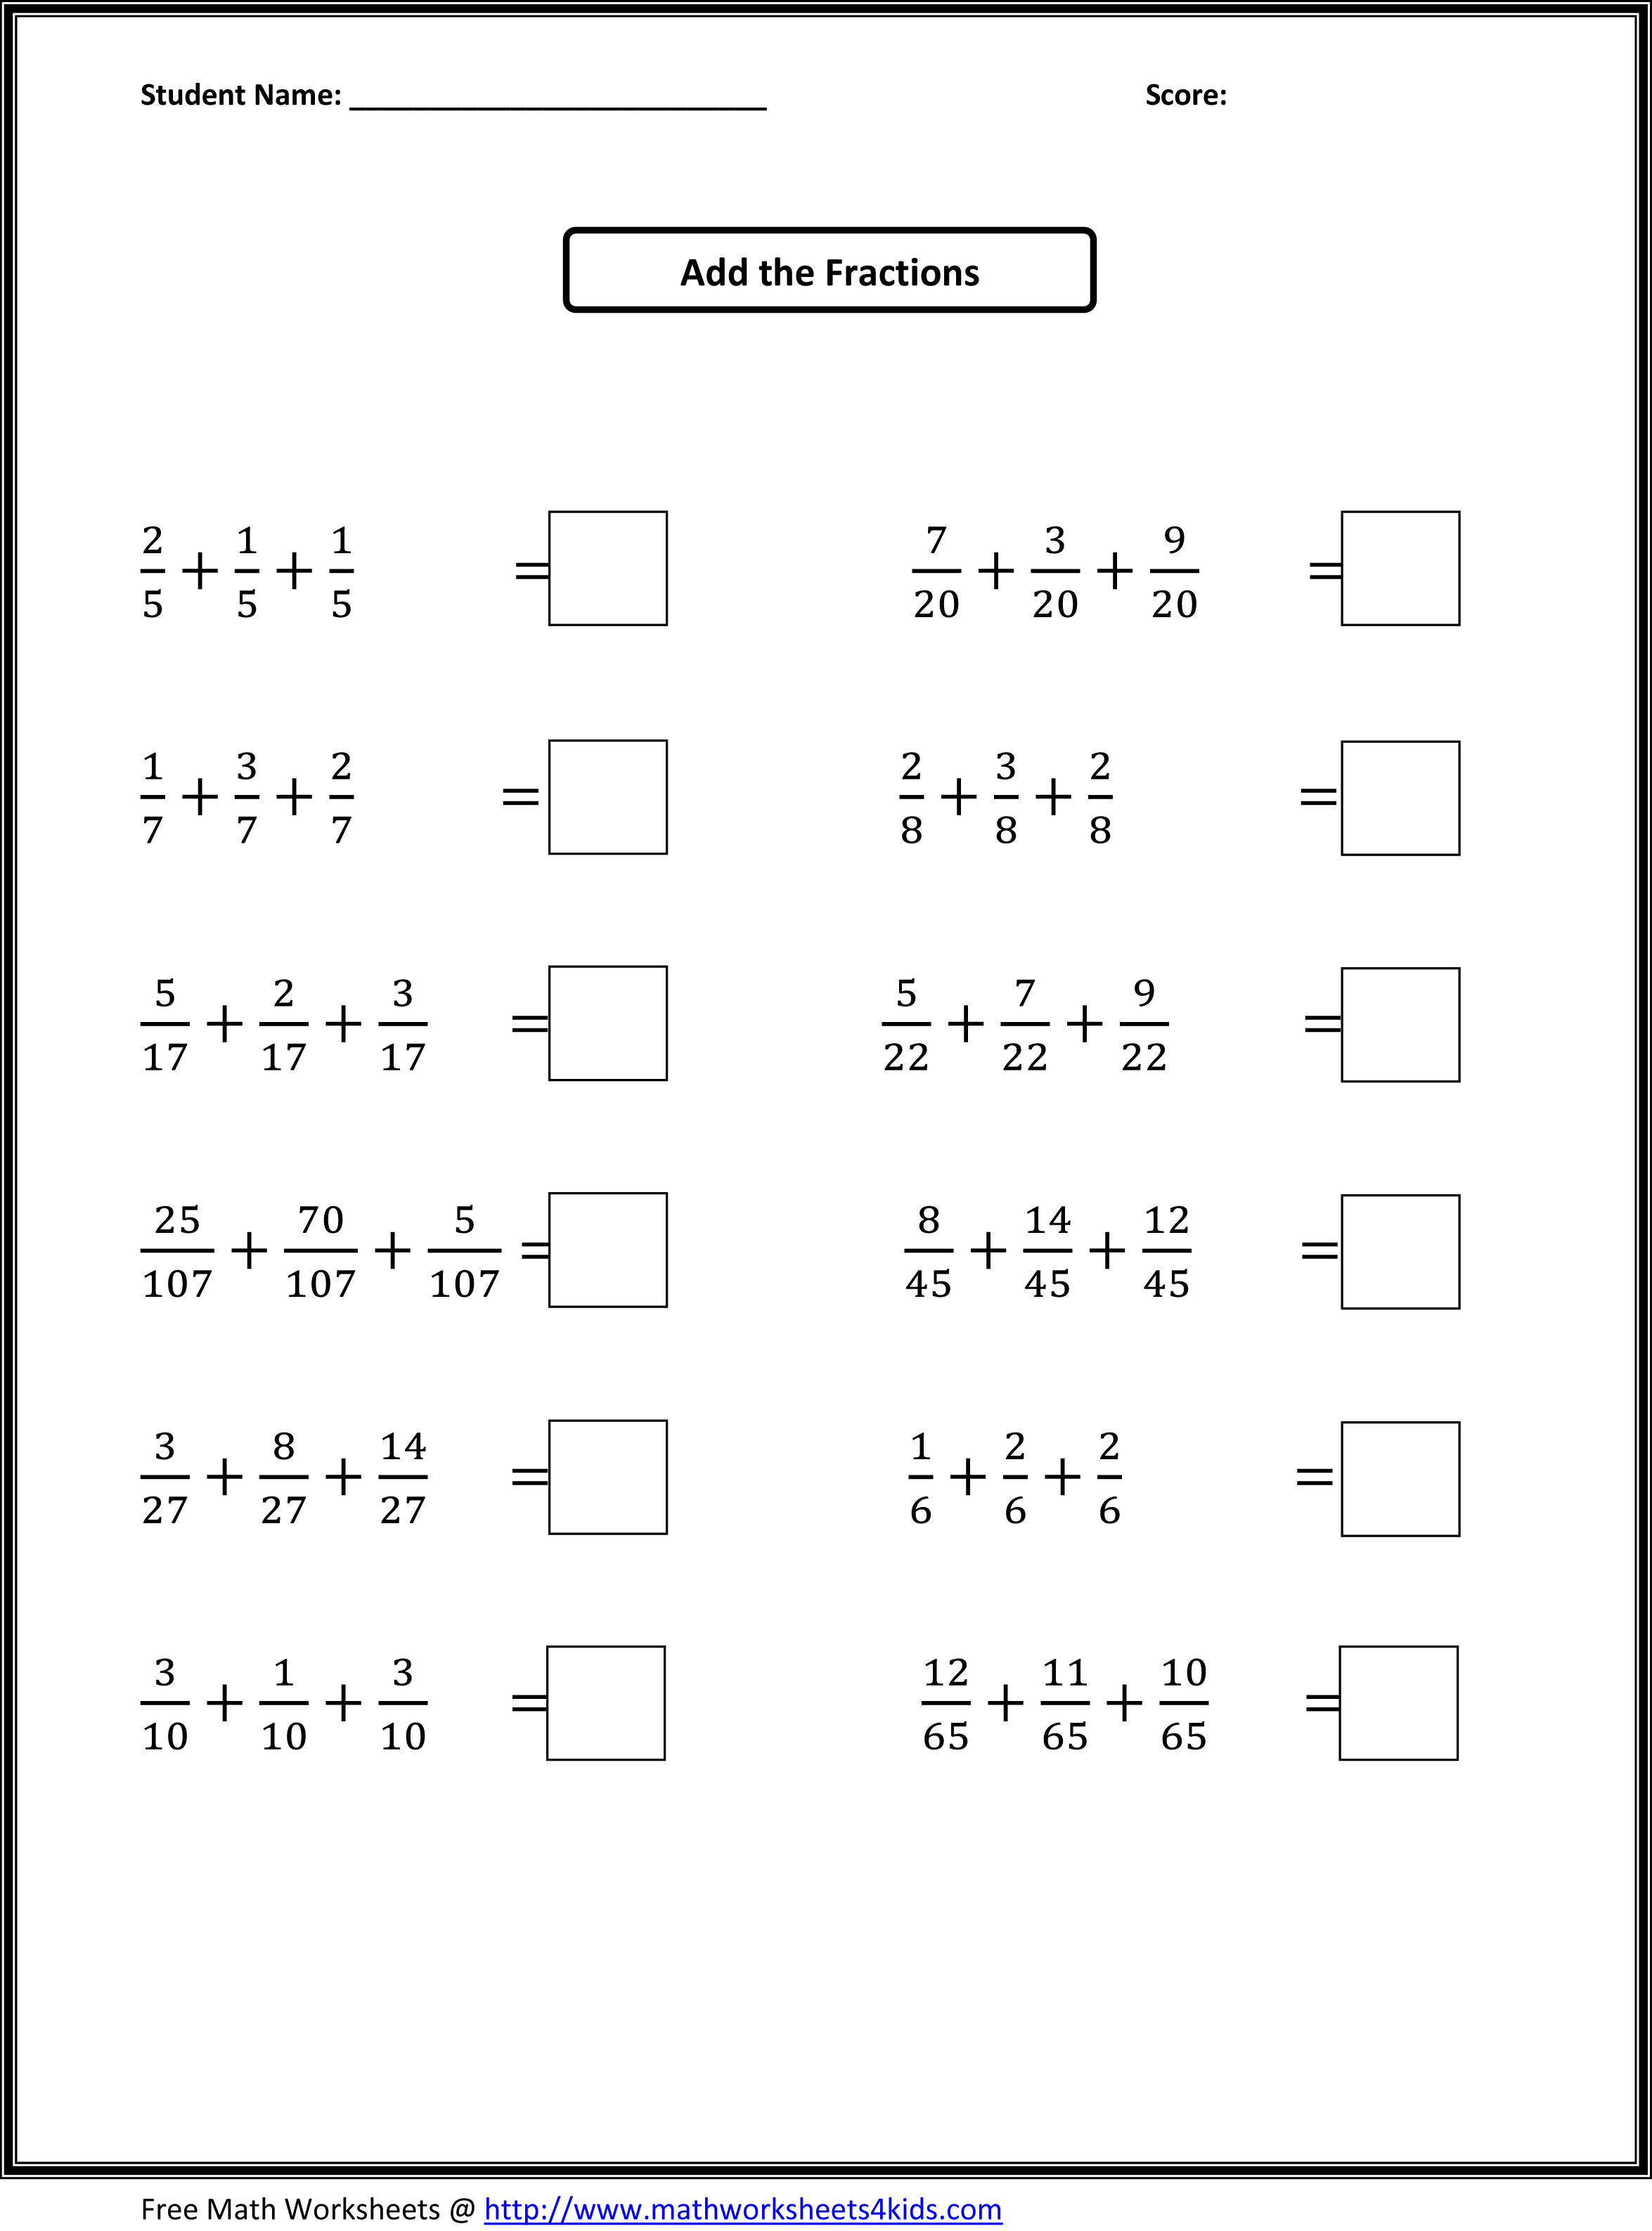 math worksheet : fraction worksheets grade 7  synhoff : Add And Subtract Fractions Worksheets